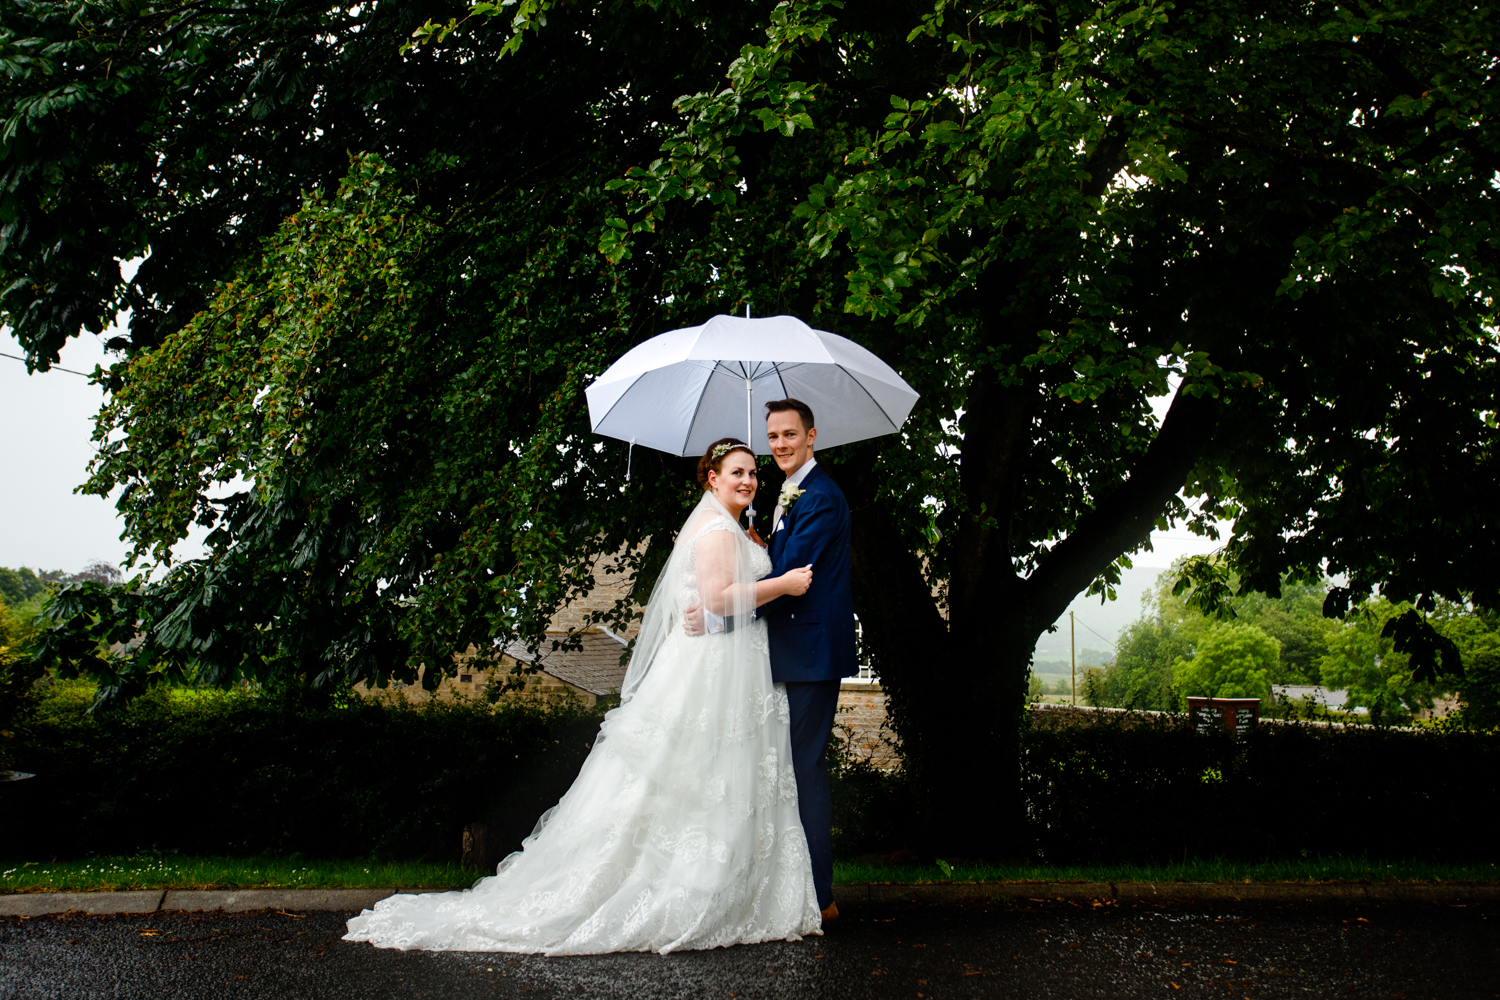 Lancashire-wedding-photographer-adele-and-alex-094.jpg